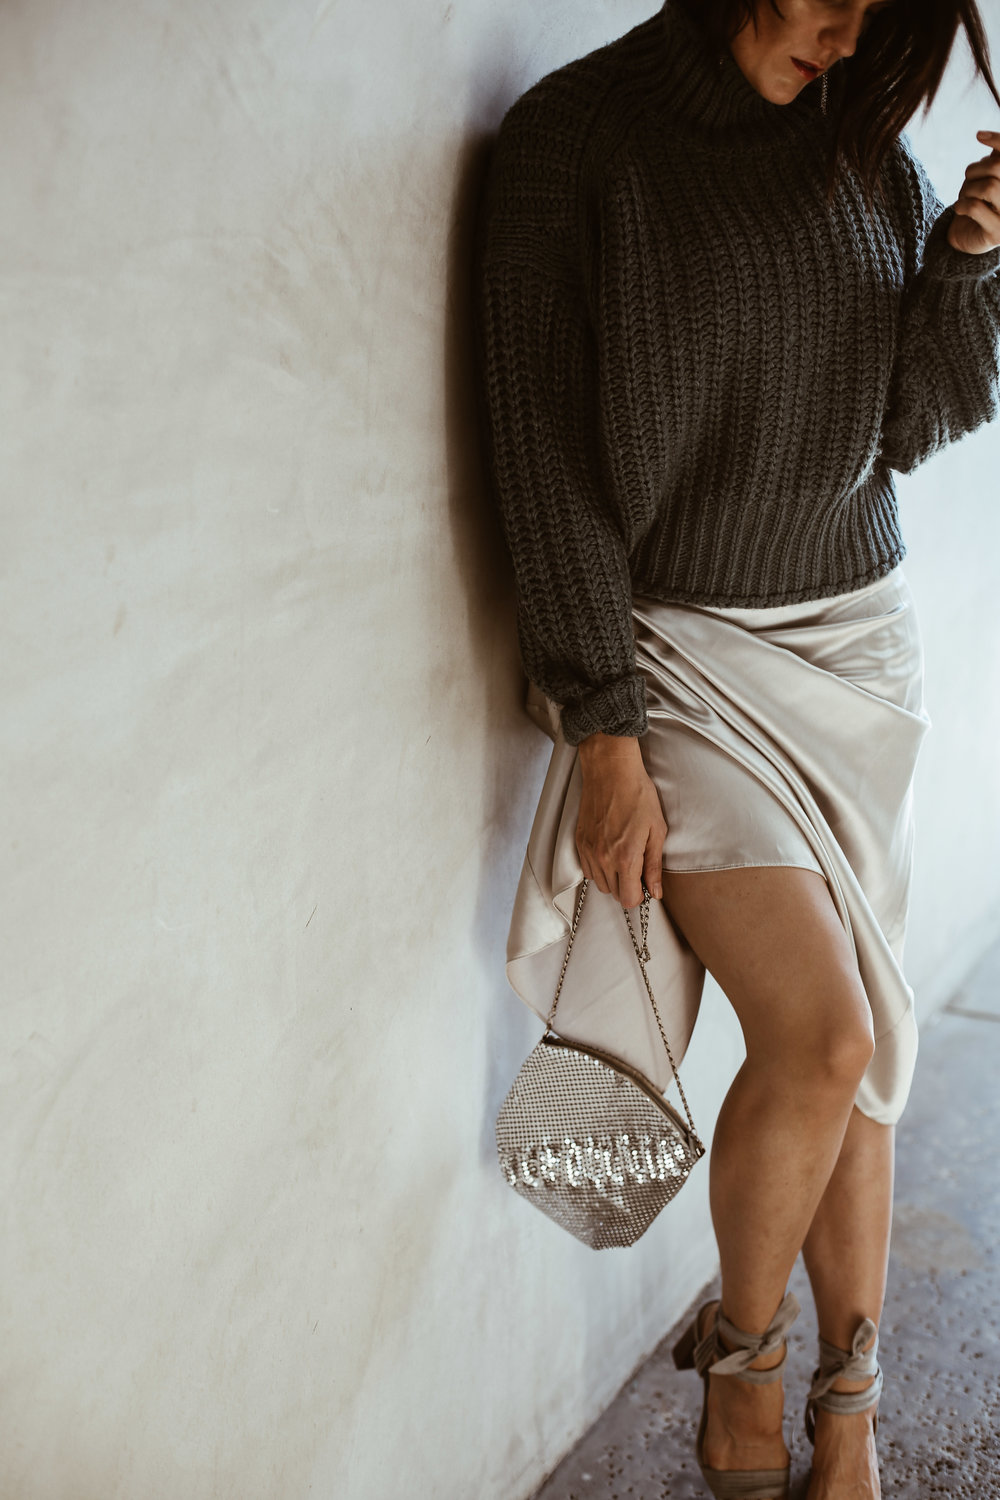 Sweater + Slip Dress Outfit for New Year's Eve1.jpg